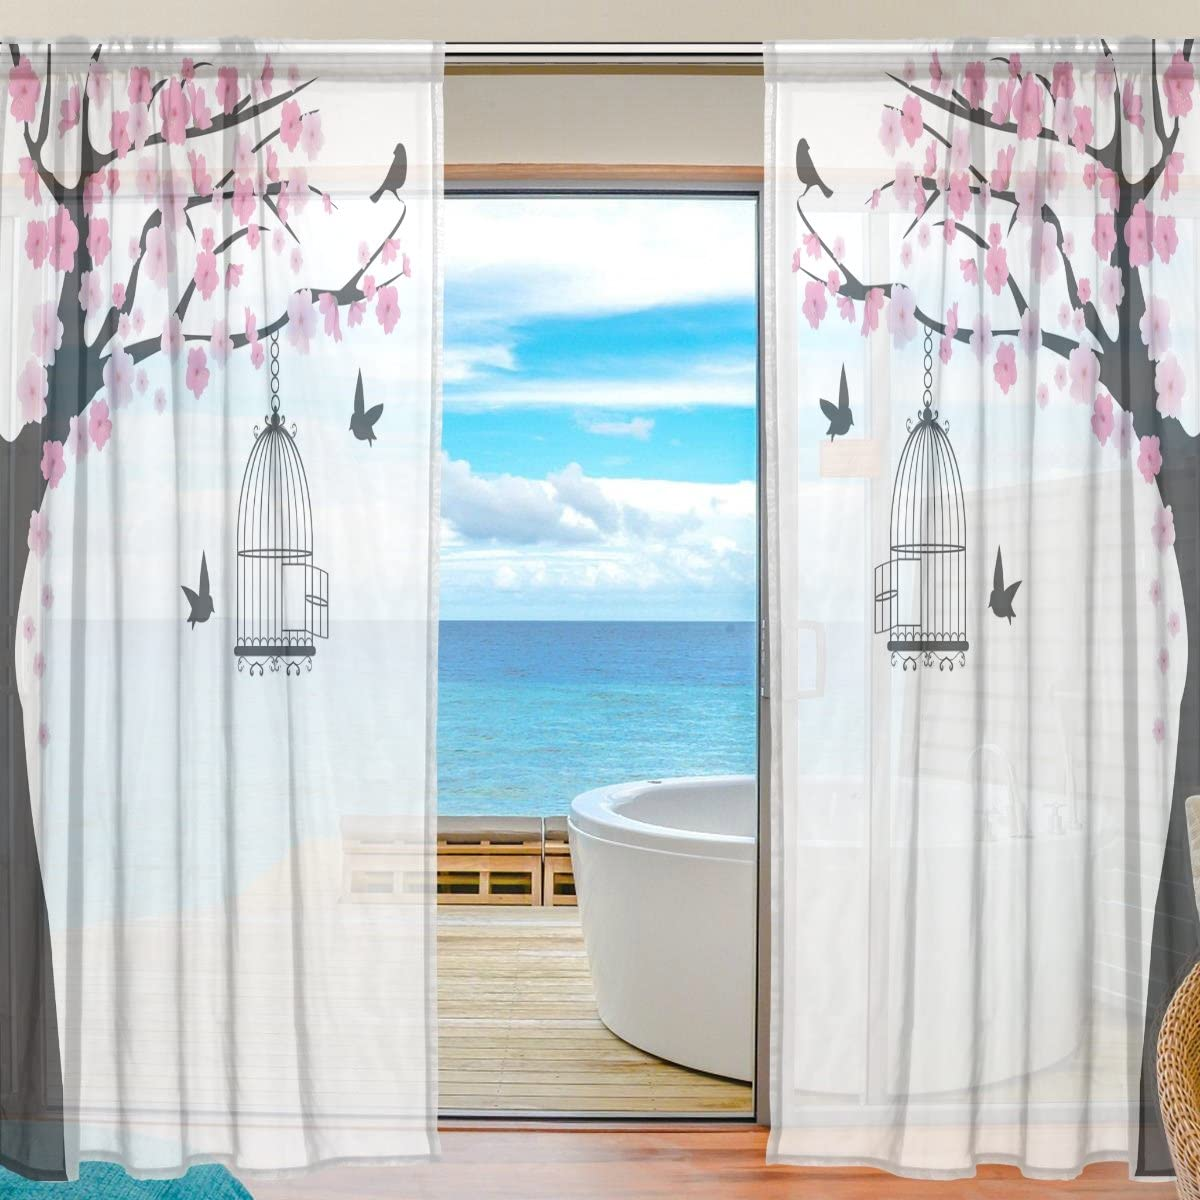 ABLINK Sakura Flower Pattern Birdcage Bird Fabric Sheer Decor Voile Tulle Window Door Curtains for Bedroom Living Room Gauze Curtains Transparent Curtain 55 W X 78 L